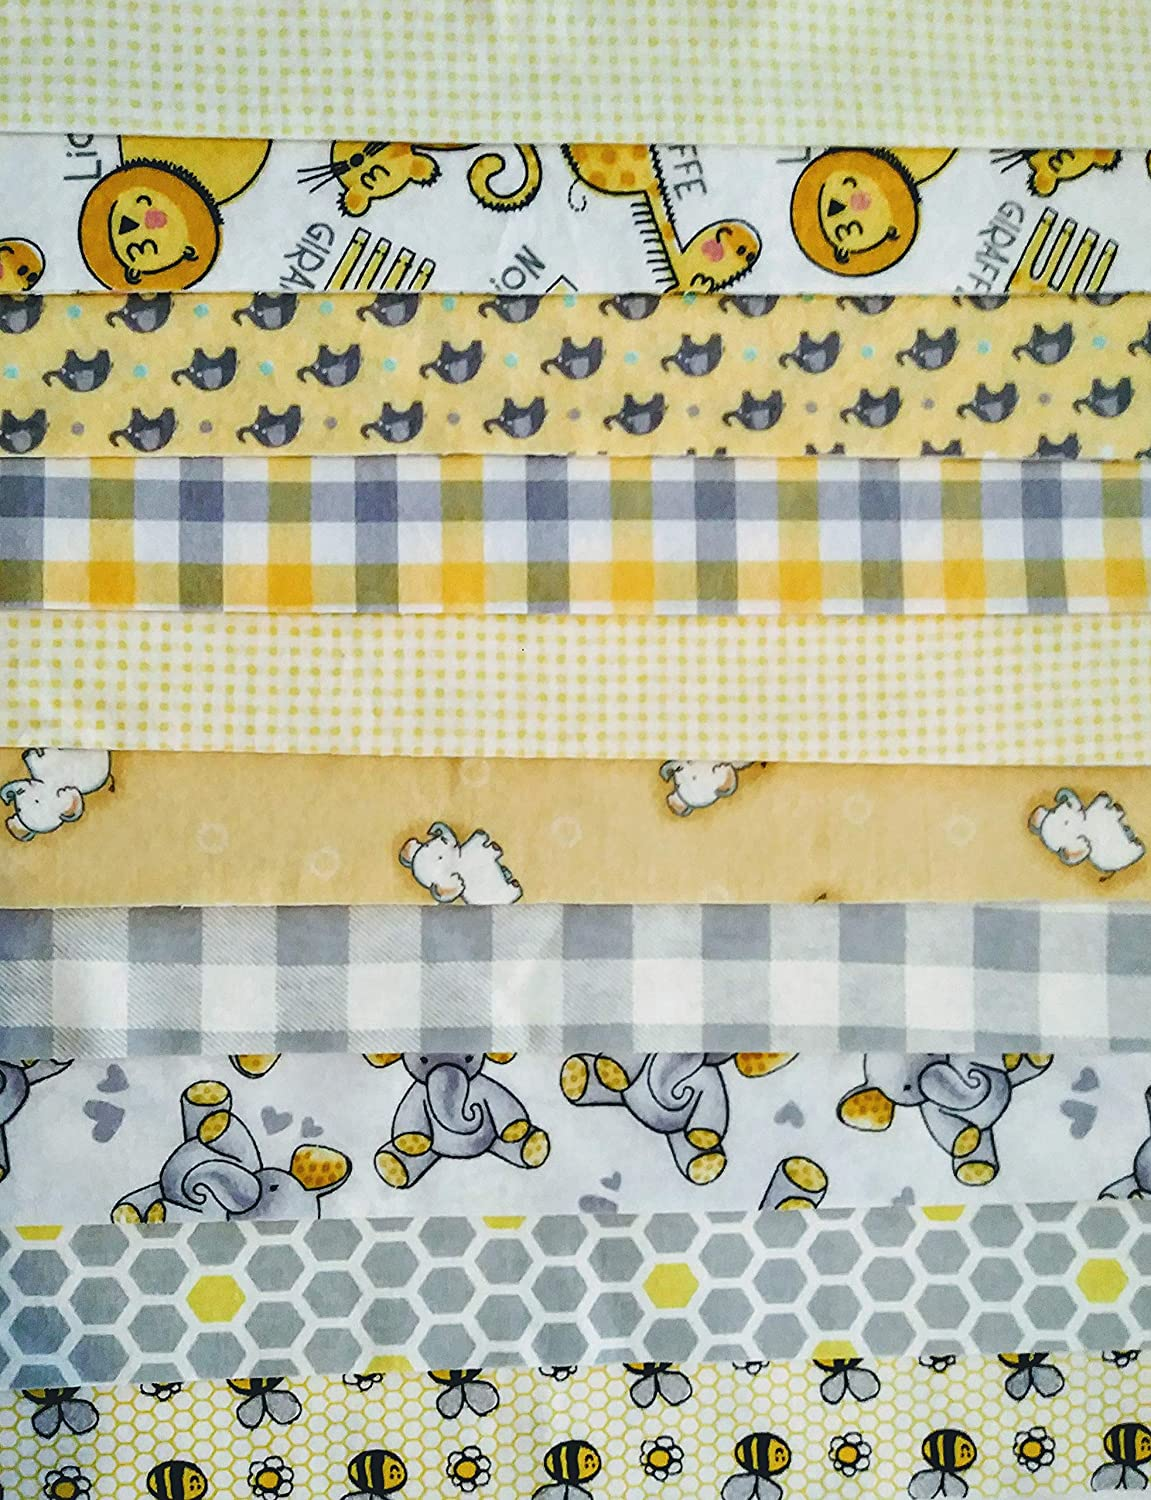 Contemporary Pre-Cut Flannel Quilting Pieces: 20 pc Jelly Rolls (Yellow Bees/Elephants, 2.5 x 40) 2.5 x 40) mixed